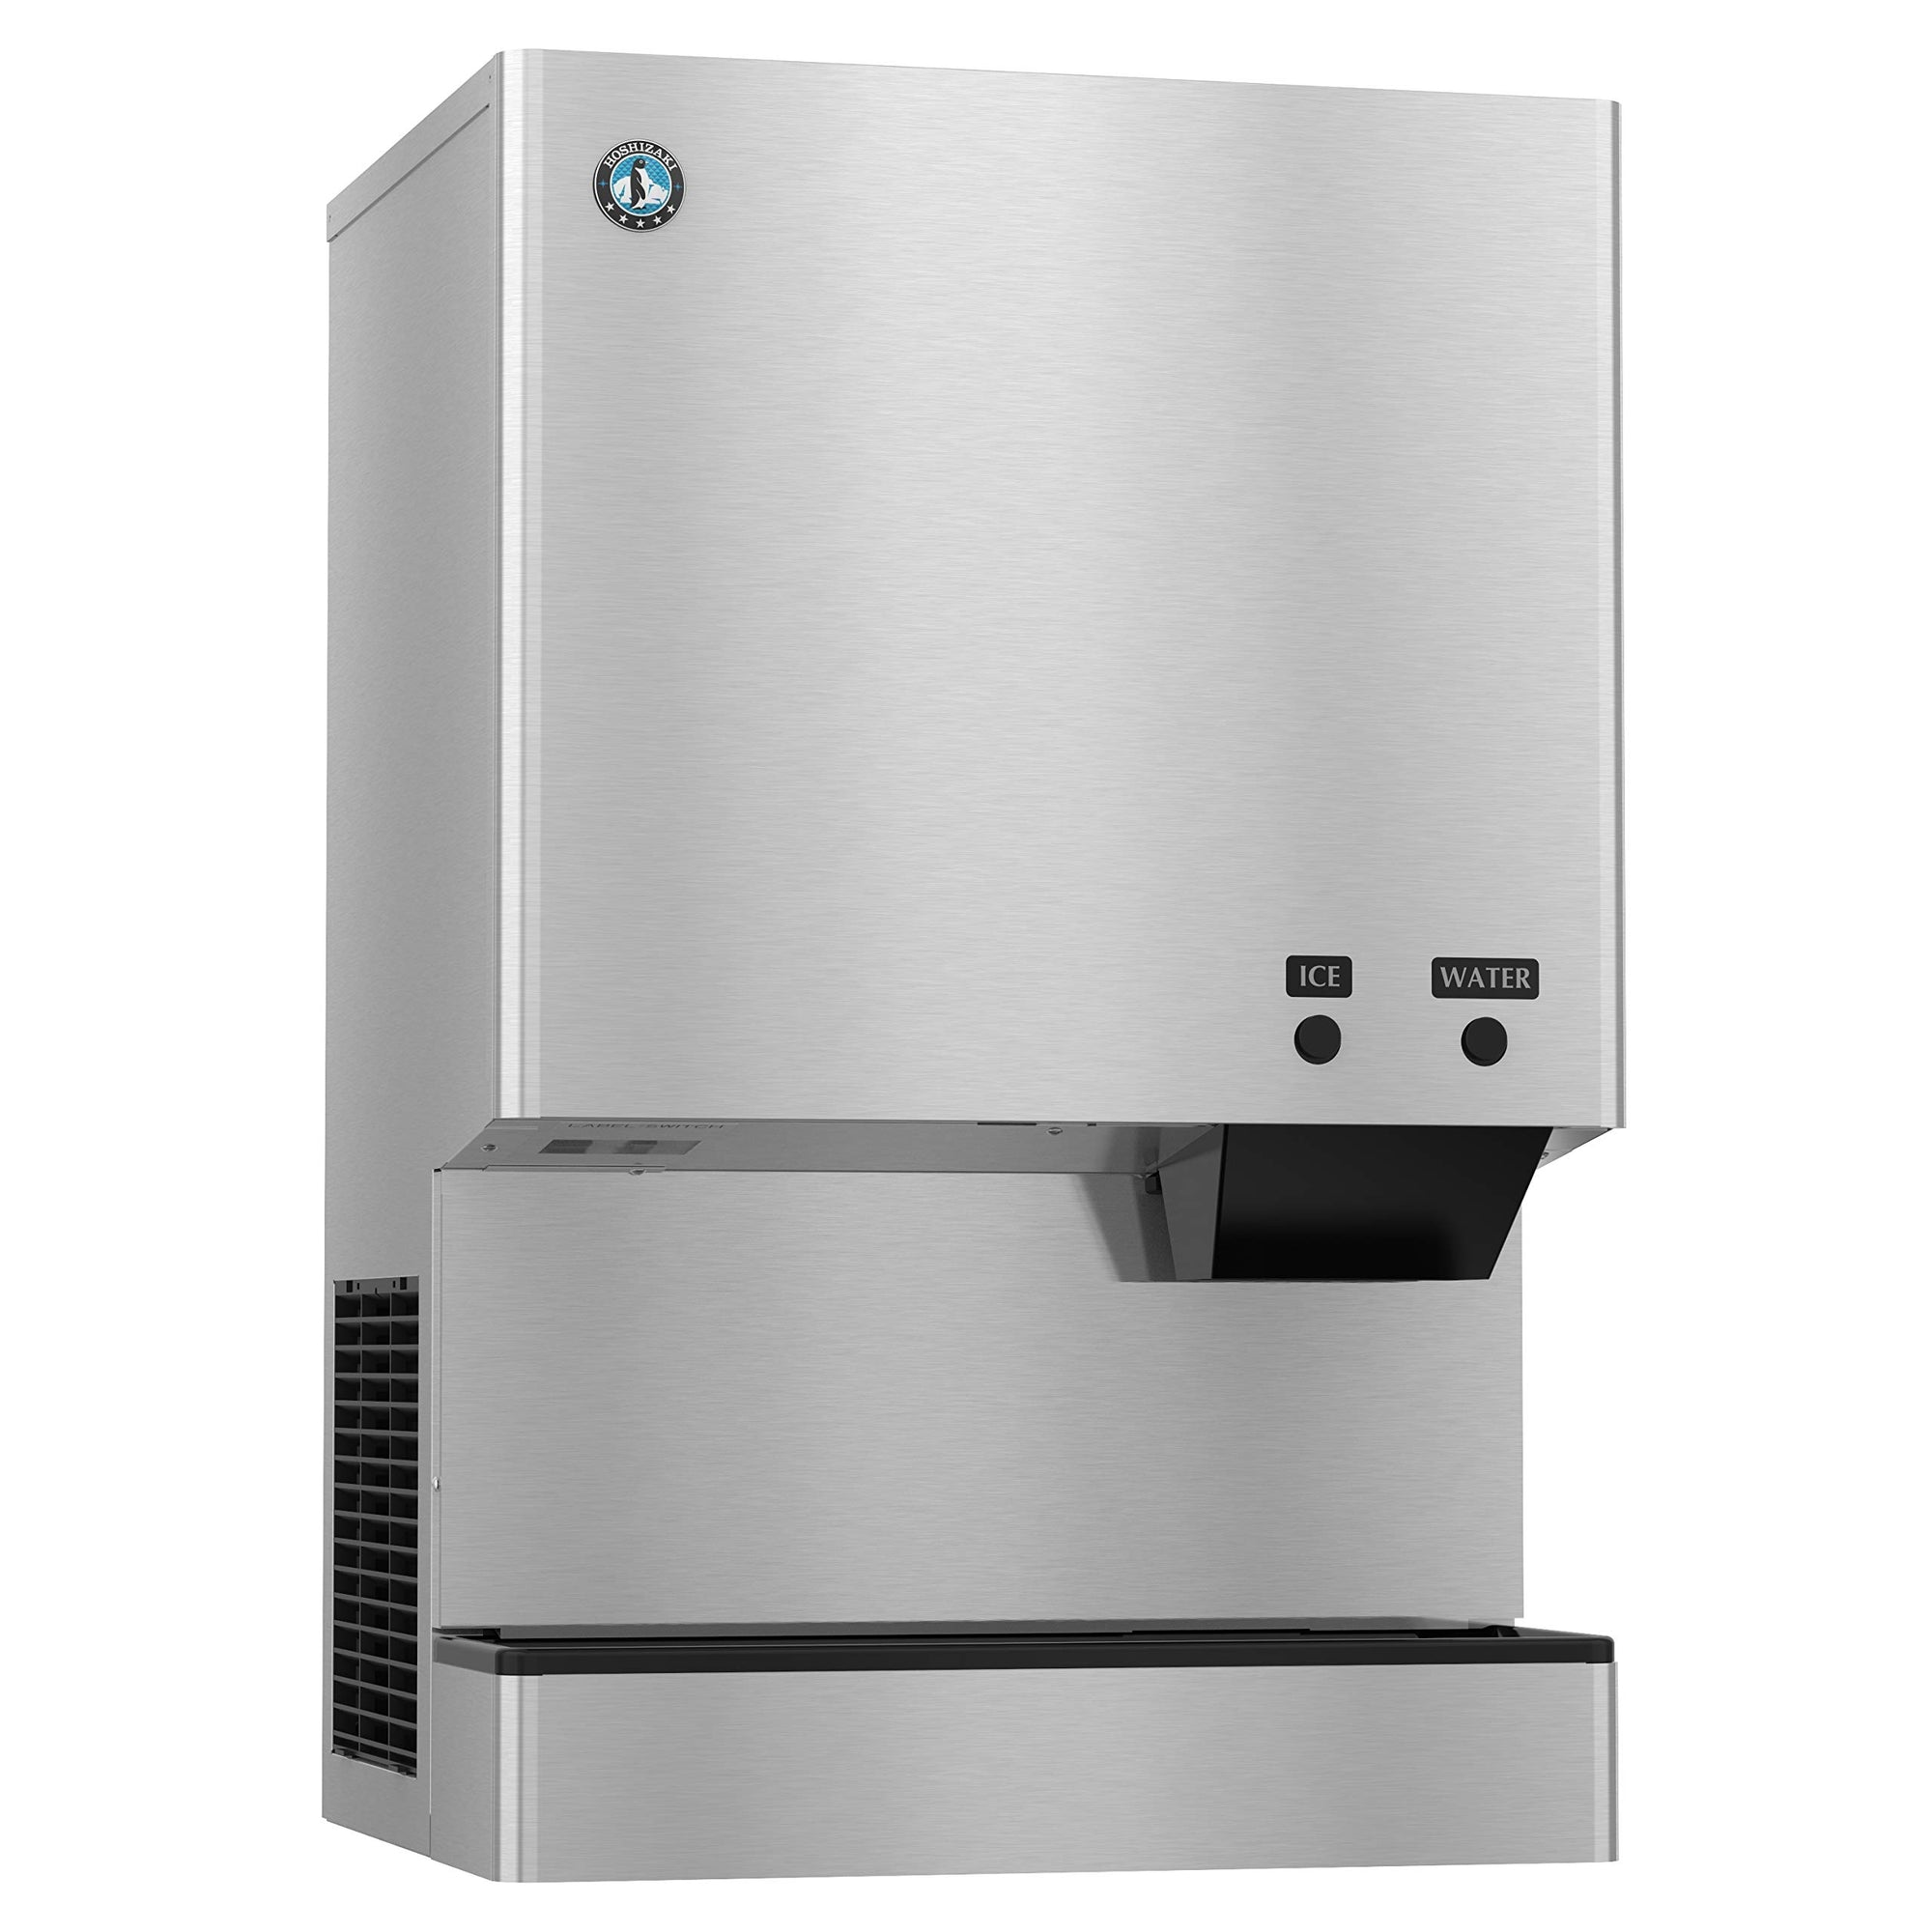 Hoshizaki DCM-300BAH Air-Cooled Ice Maker Water and Ice Dispenser Built in 40lb Storage Bin